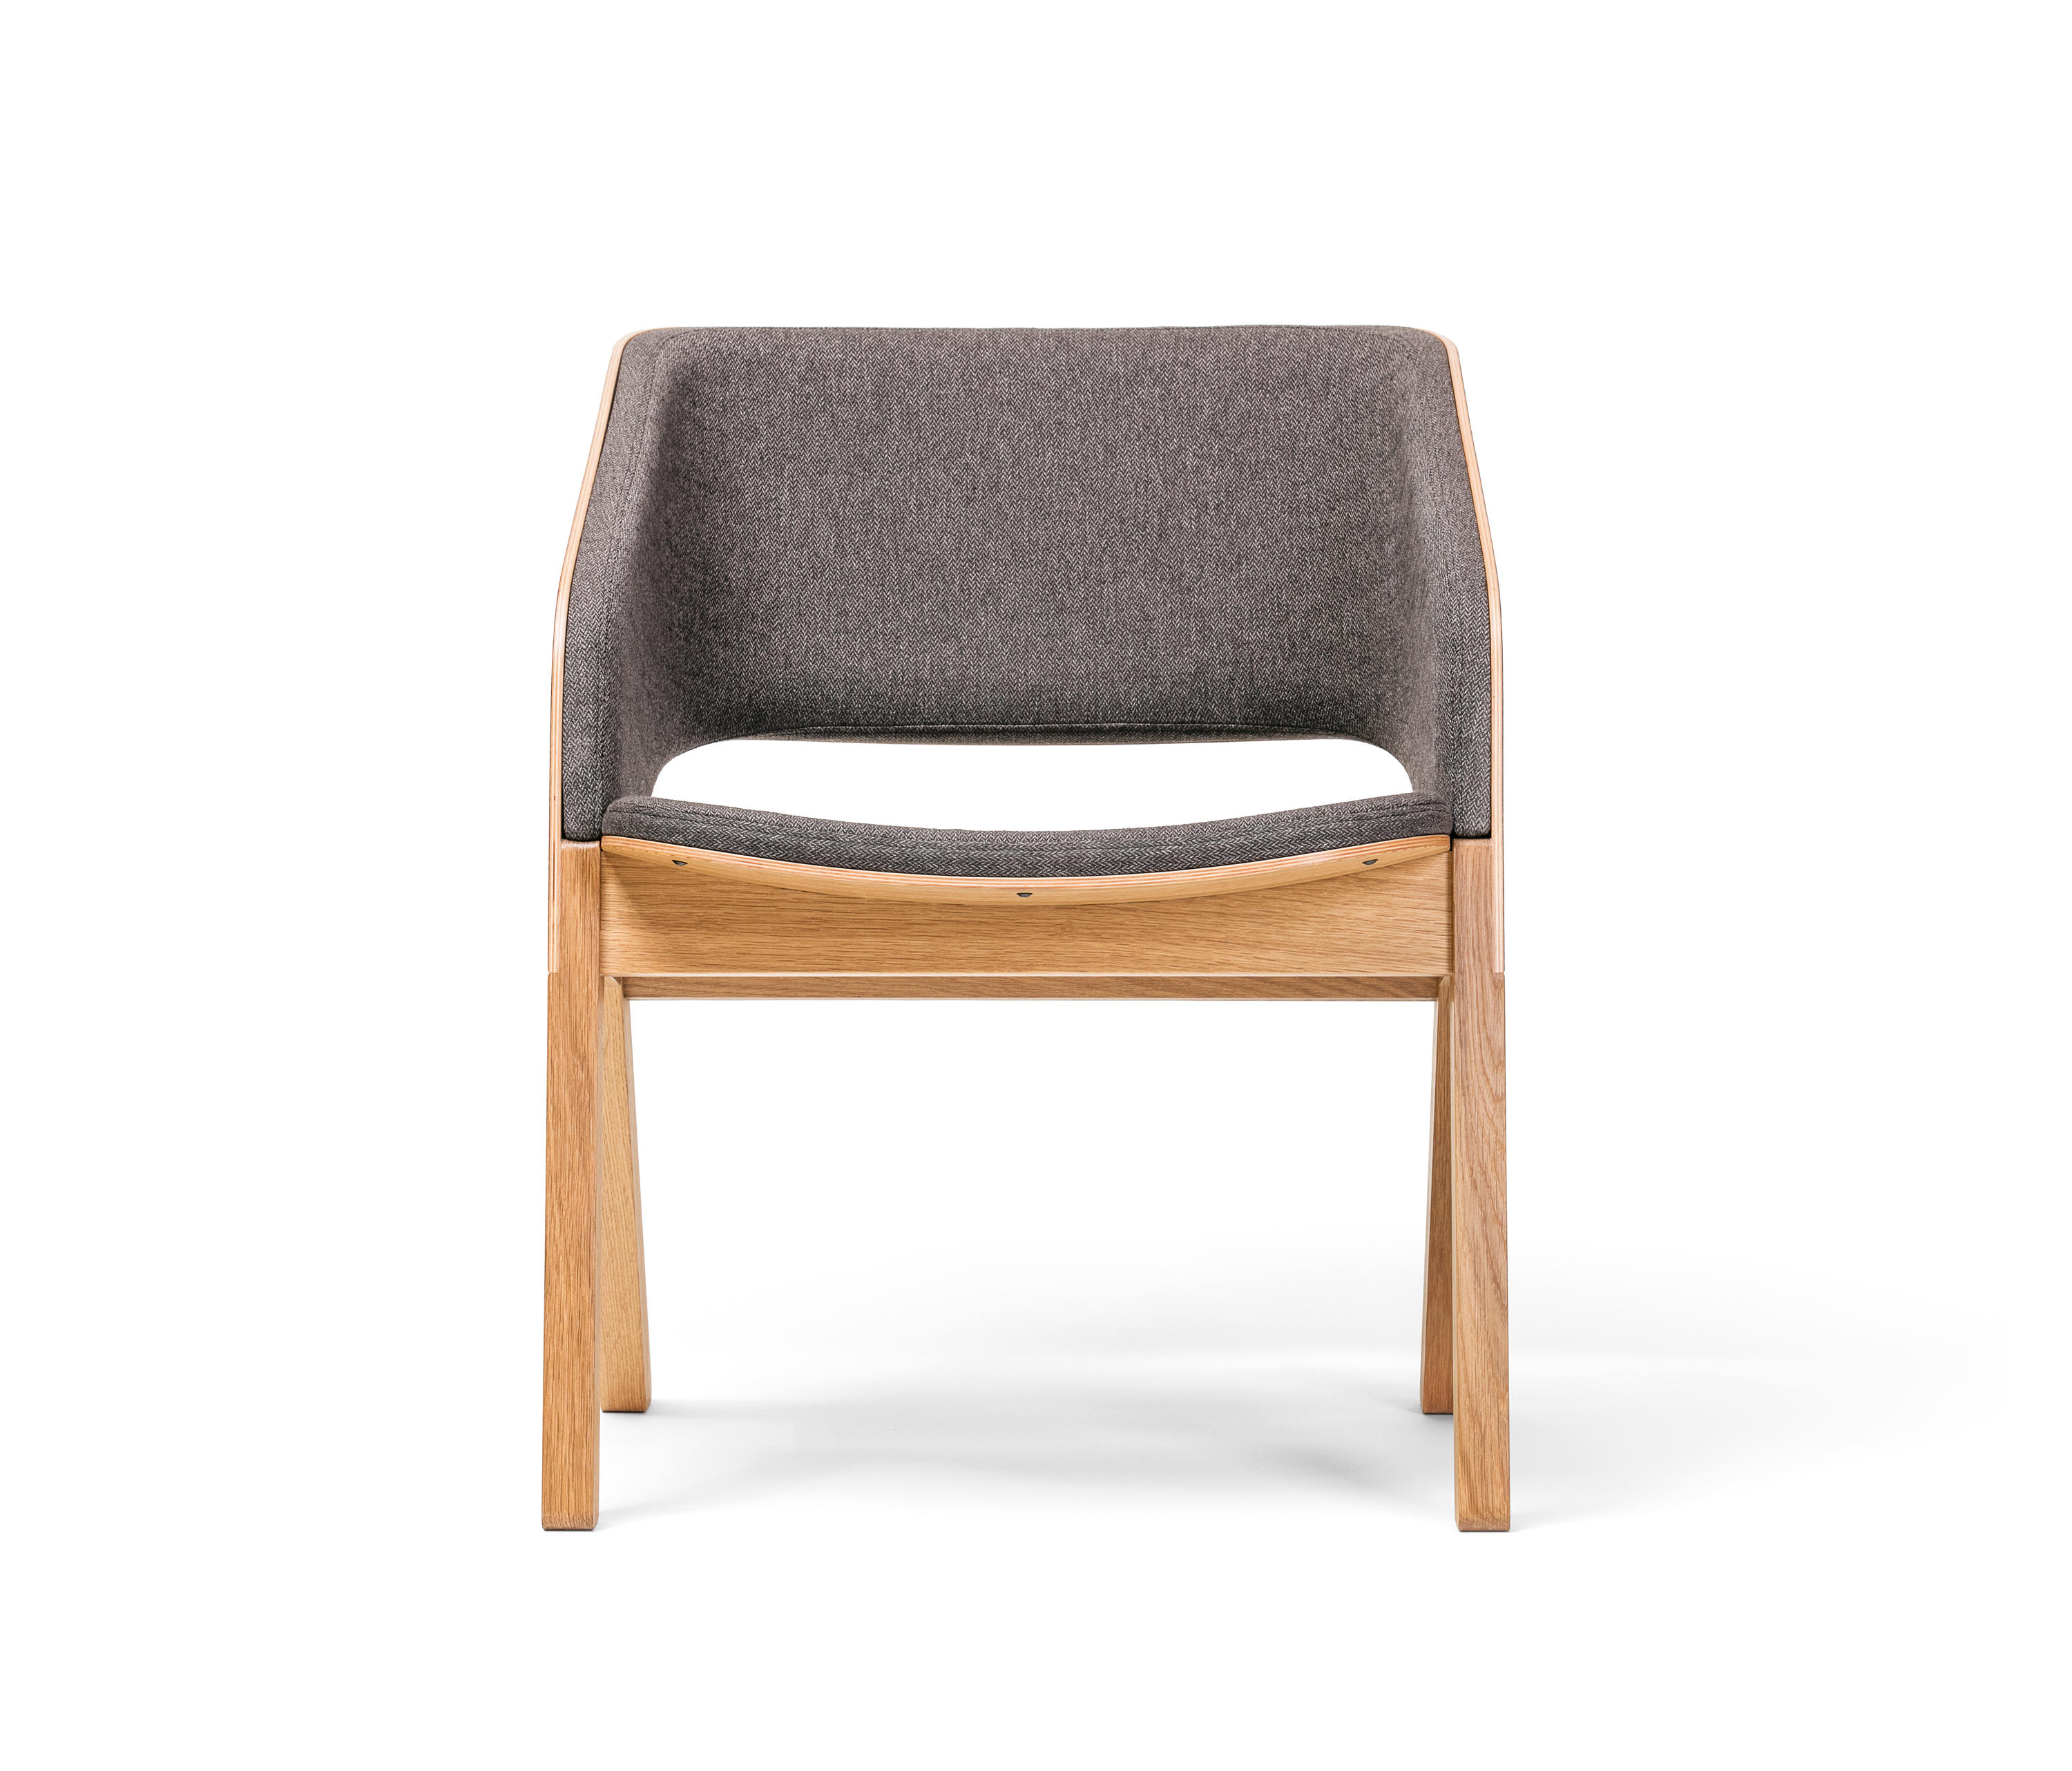 Lounge sessel holz  MERANO LOUNGE-SESSEL - Loungesessel von TON | Architonic